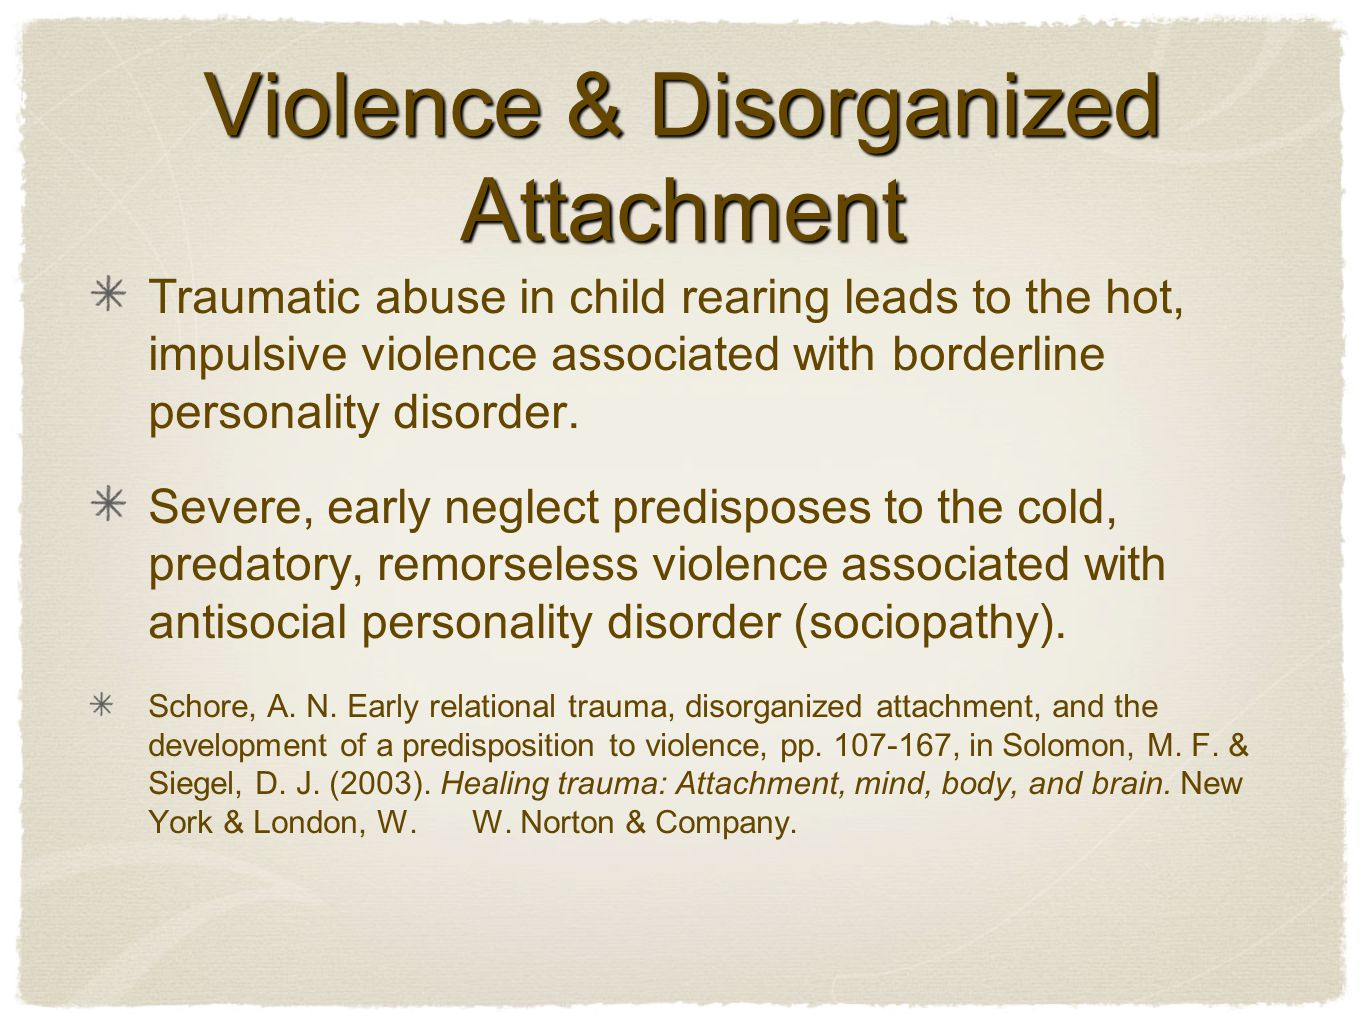 Violence & Disorganized Attachment Traumatic abuse in child rearing leads to the hot, impulsive violence associated with borderline personality disorder.